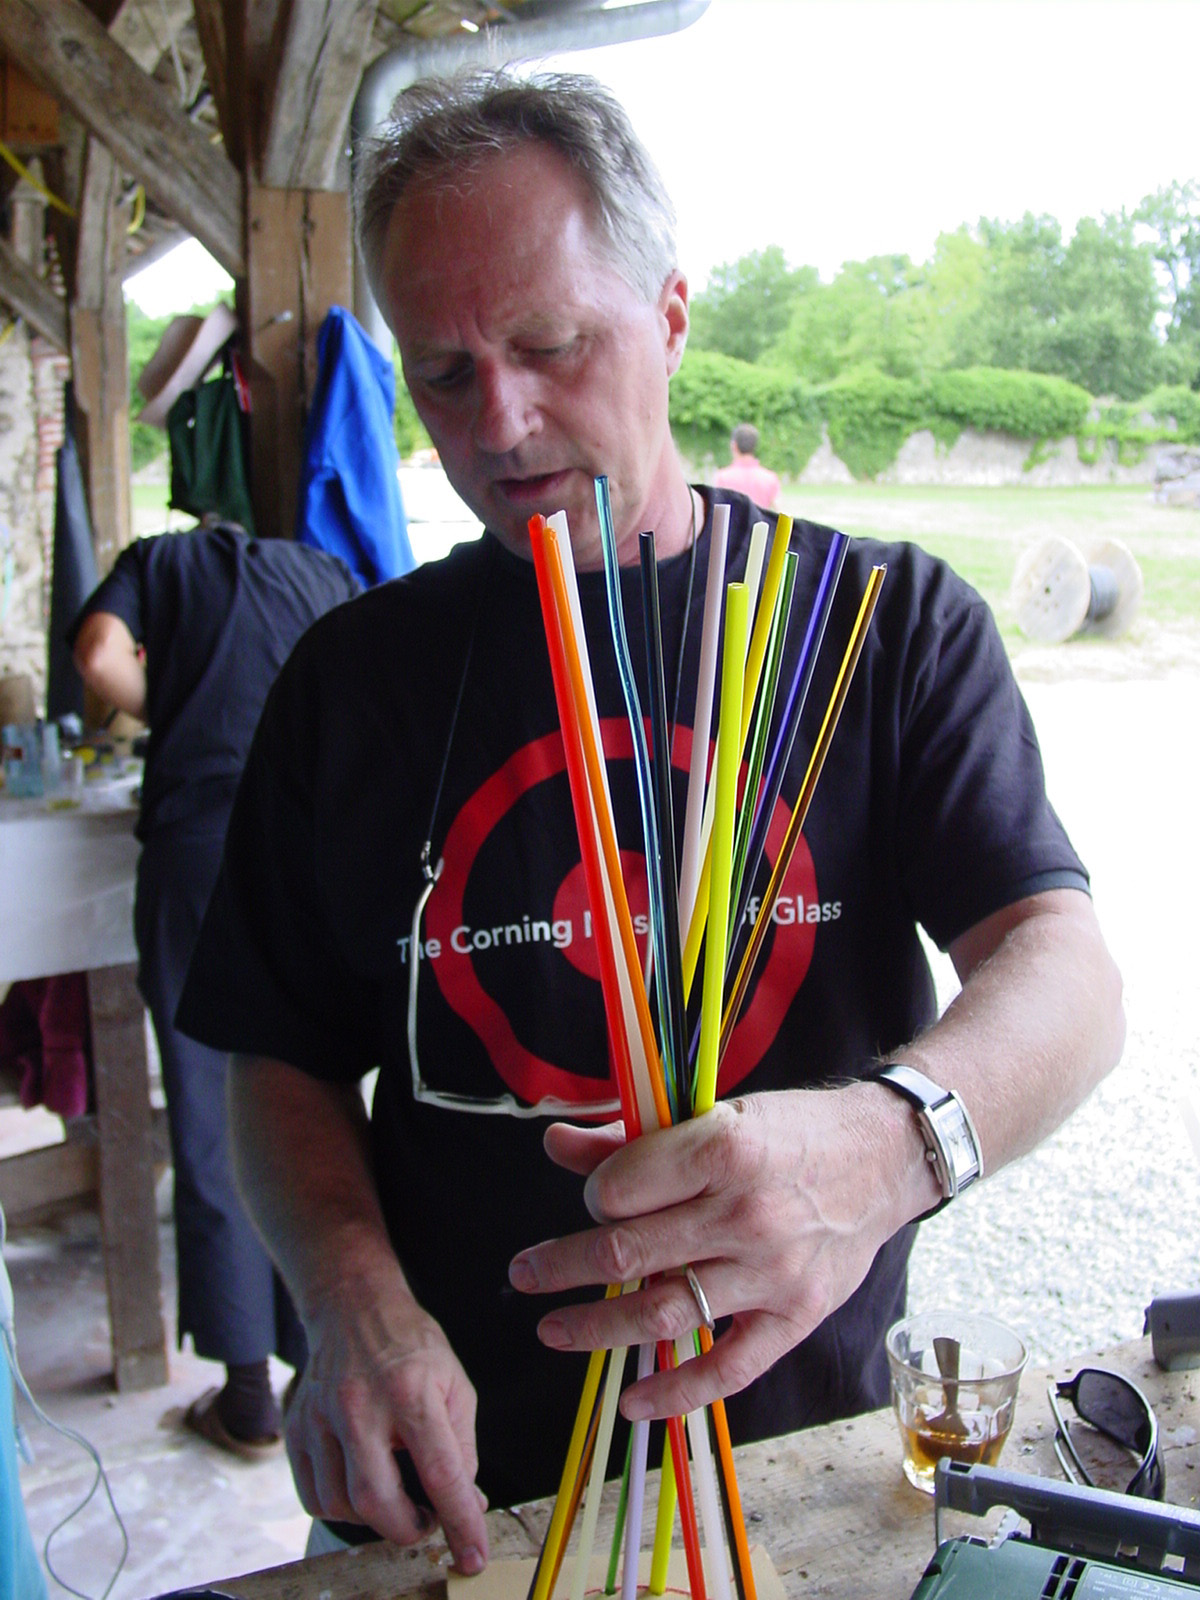 Paul Haigh at the Liquid Fusion Workshop at Boisbuchet 2006